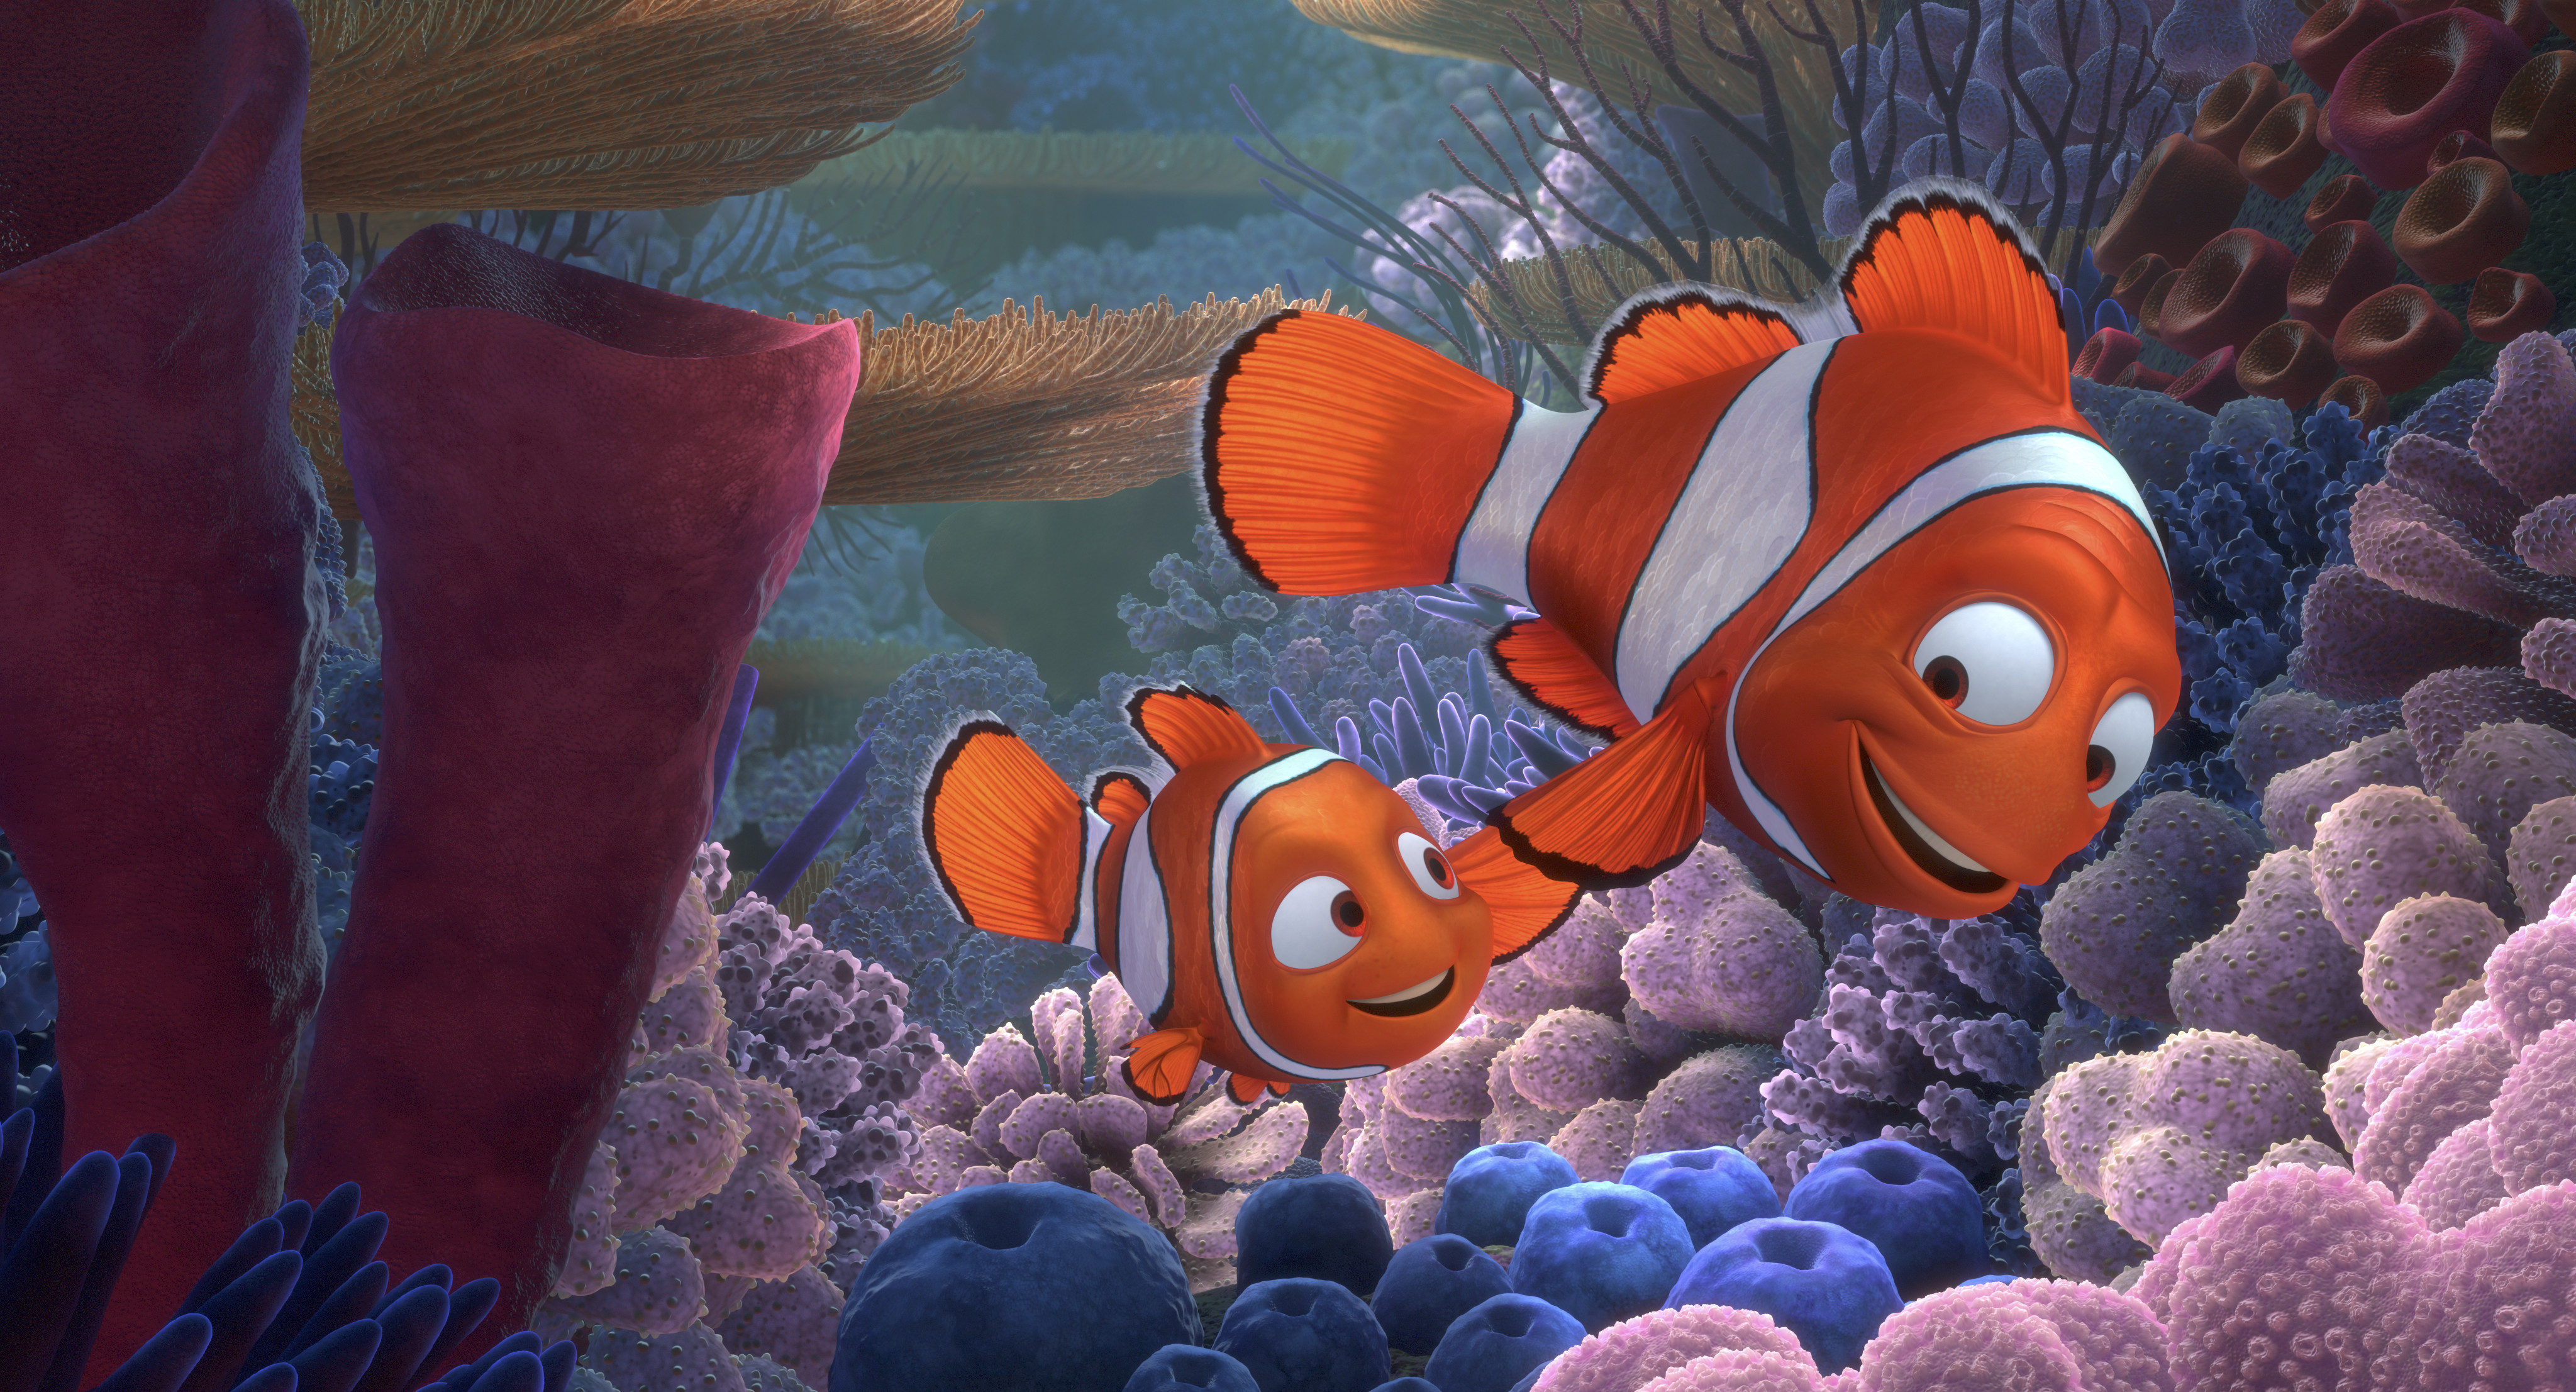 20 Things You May Not Know About \'Finding Nemo\' - Beyond the Box ...